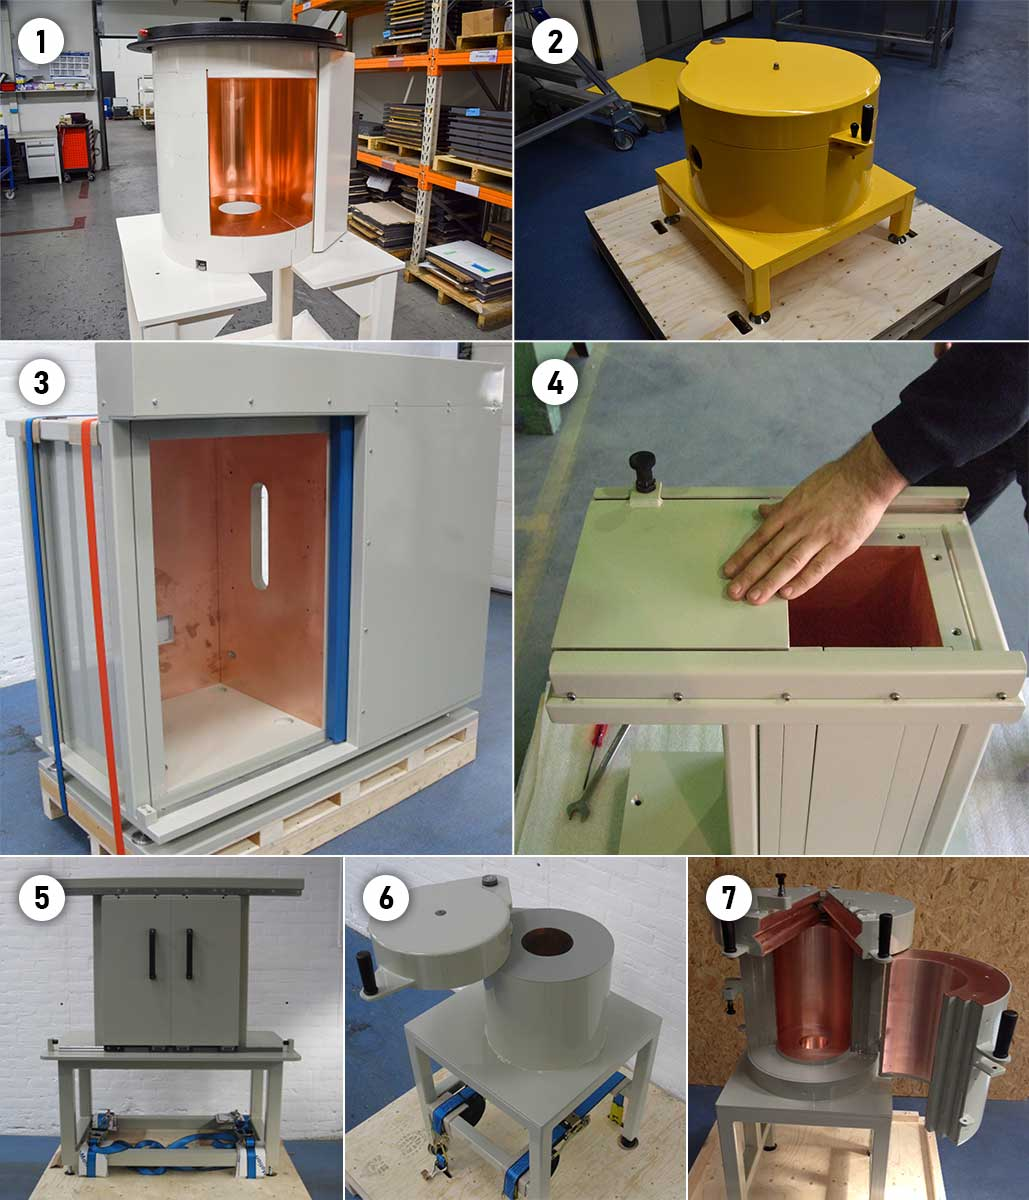 Low background radiation detector shielding